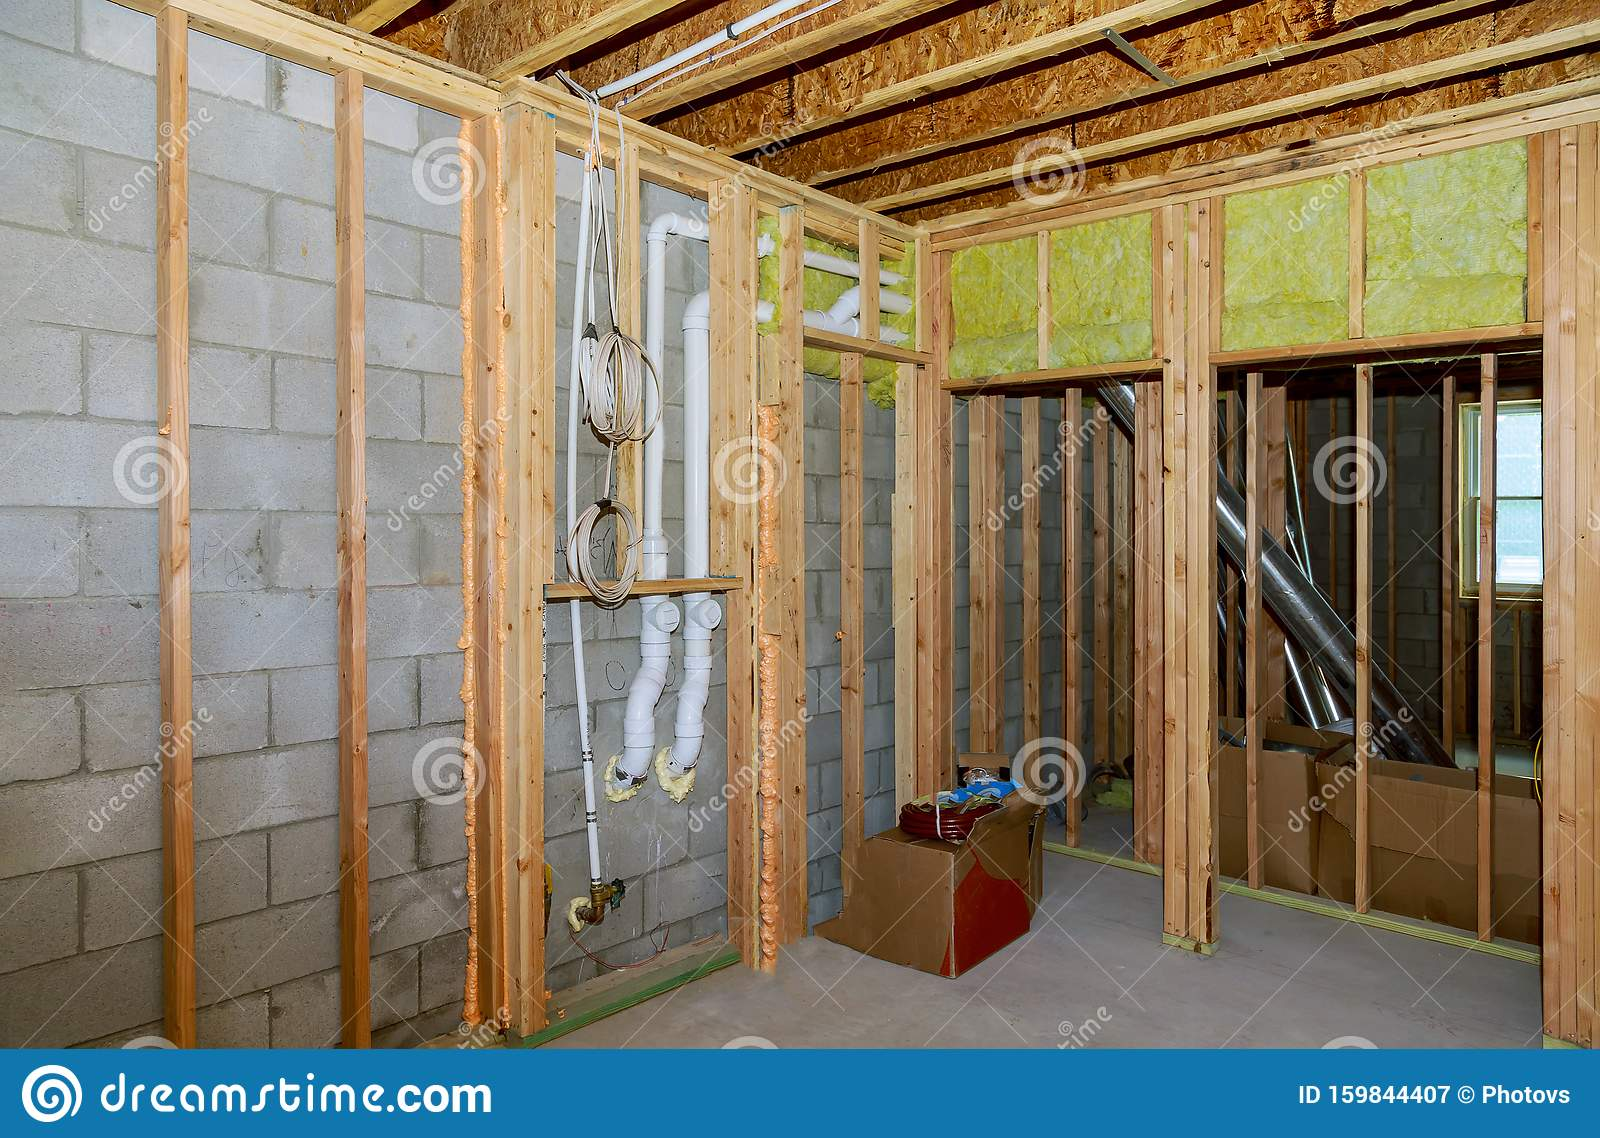 Image of: New Residential Construction Home Framing With Basement View Stock Image Image Of Residential Construction 159844407